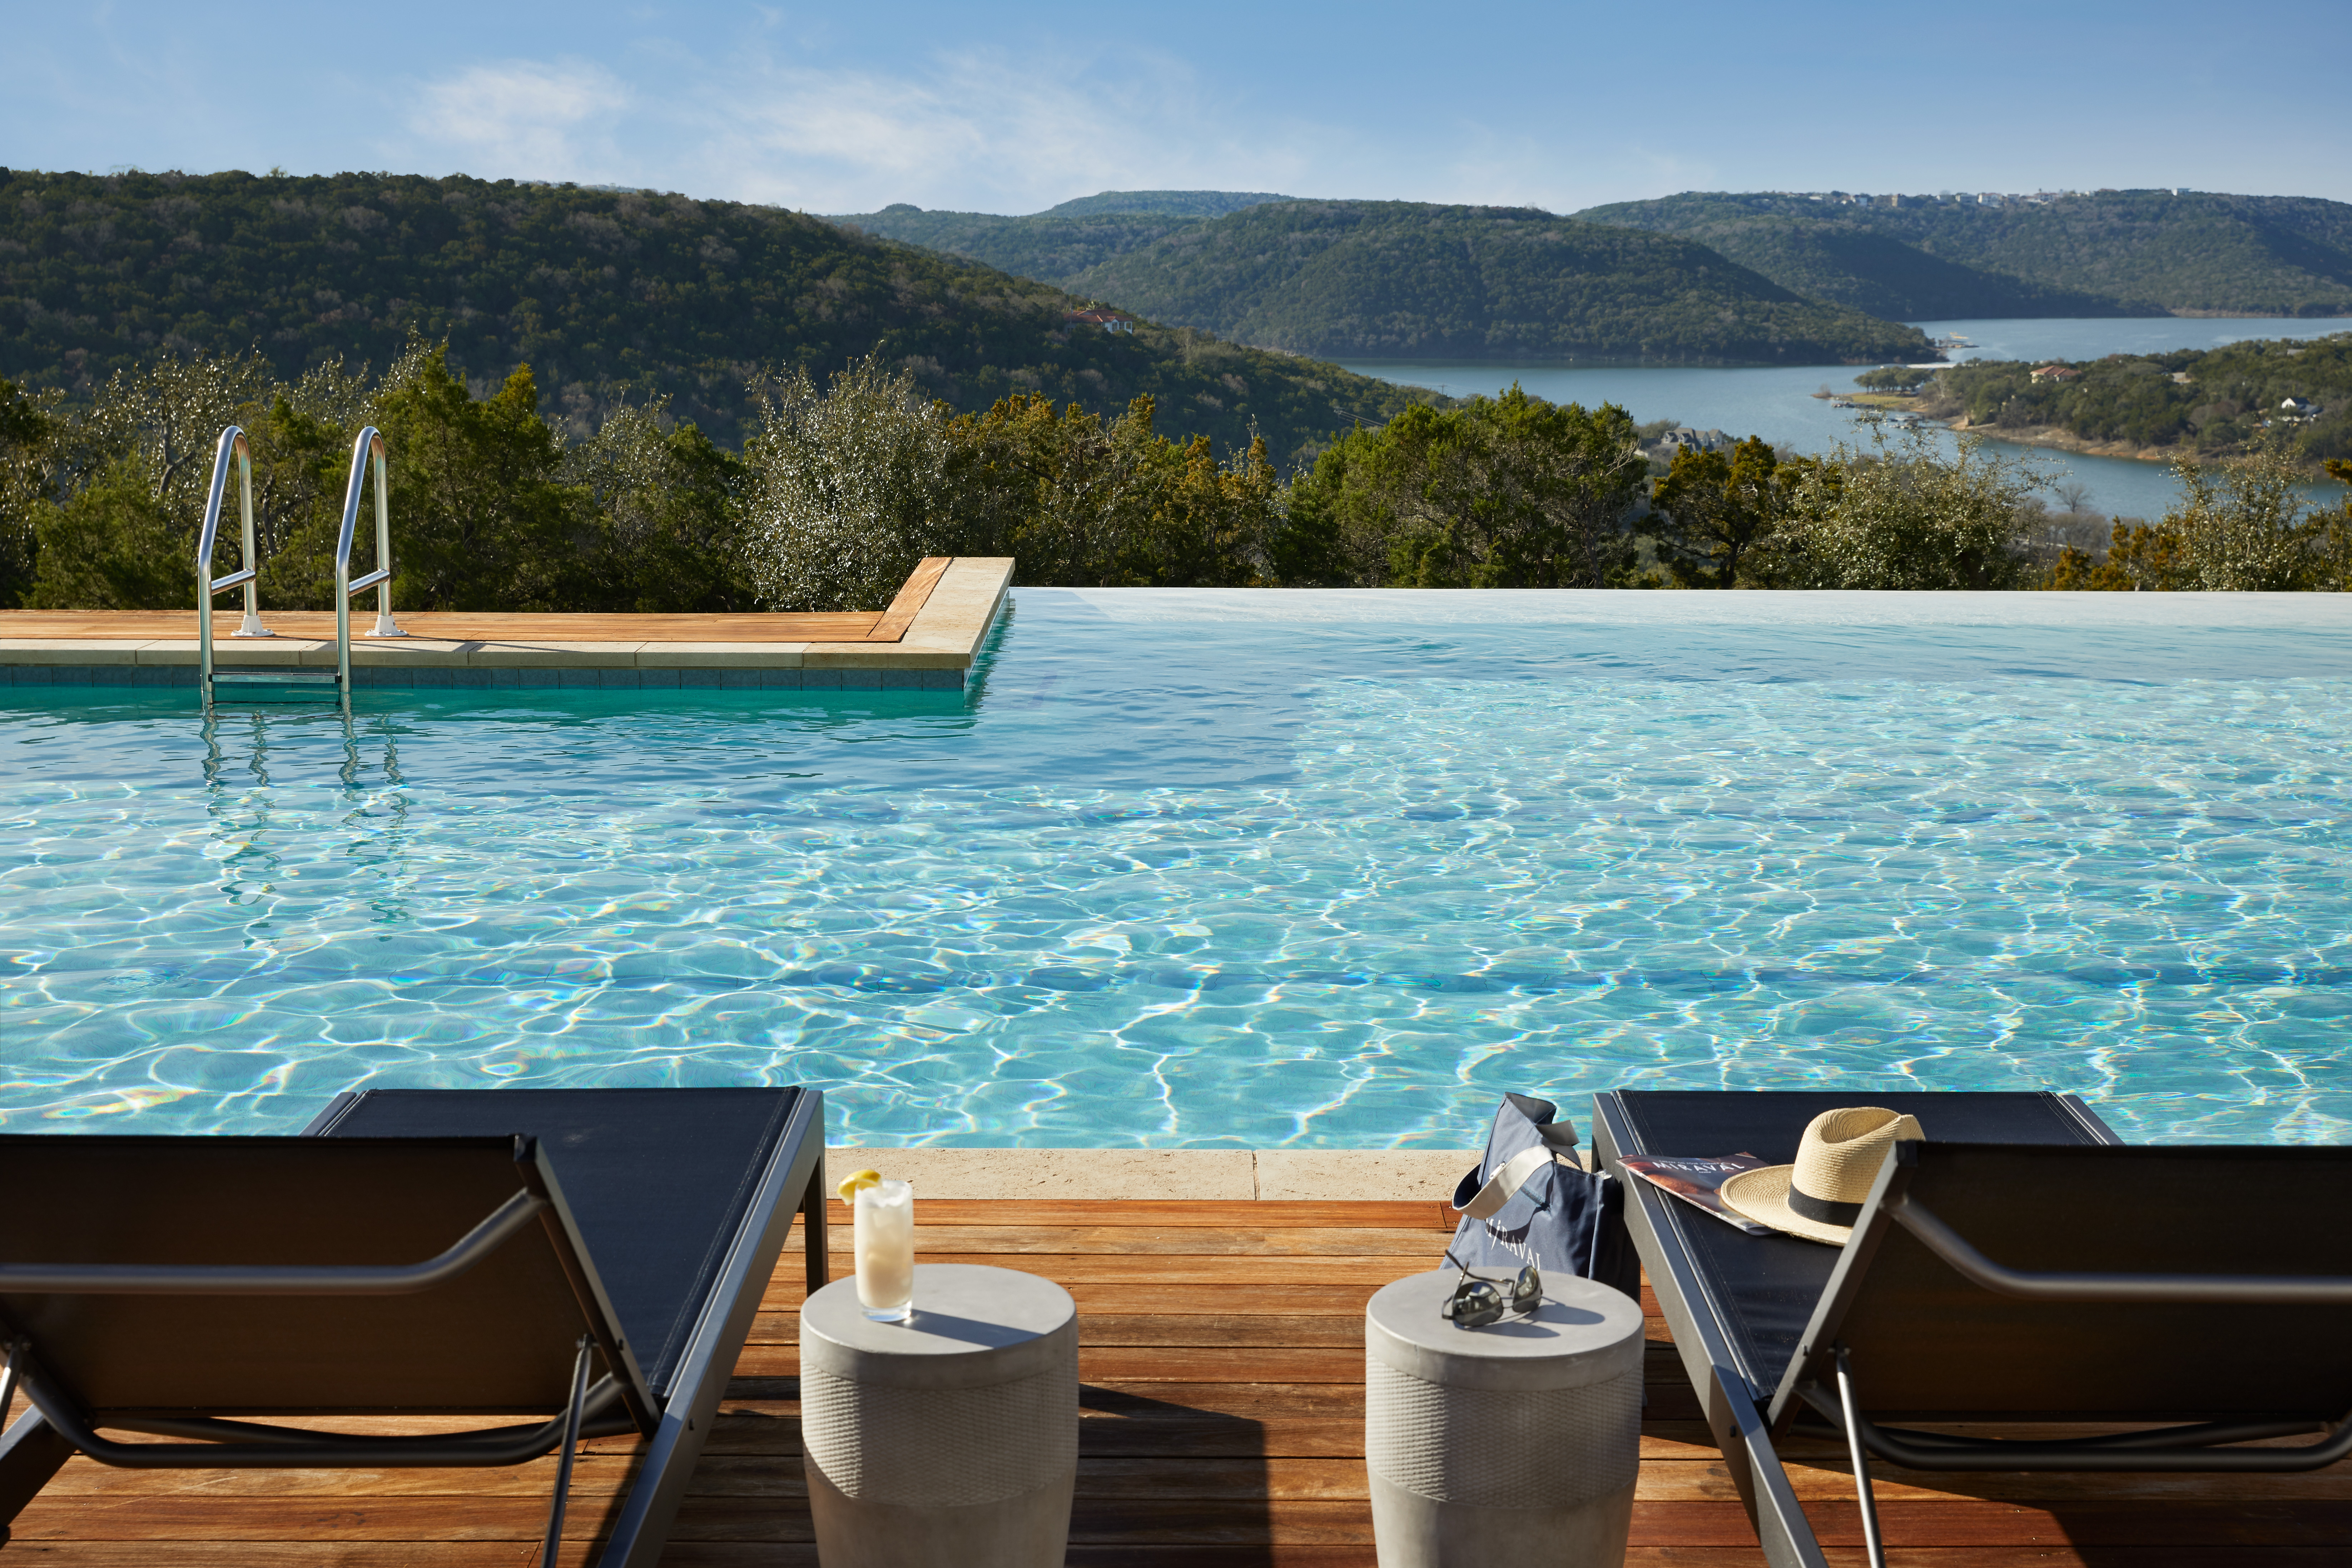 Serenity Pool 2 // Courtesy of James Baigrie for Miraval Austin